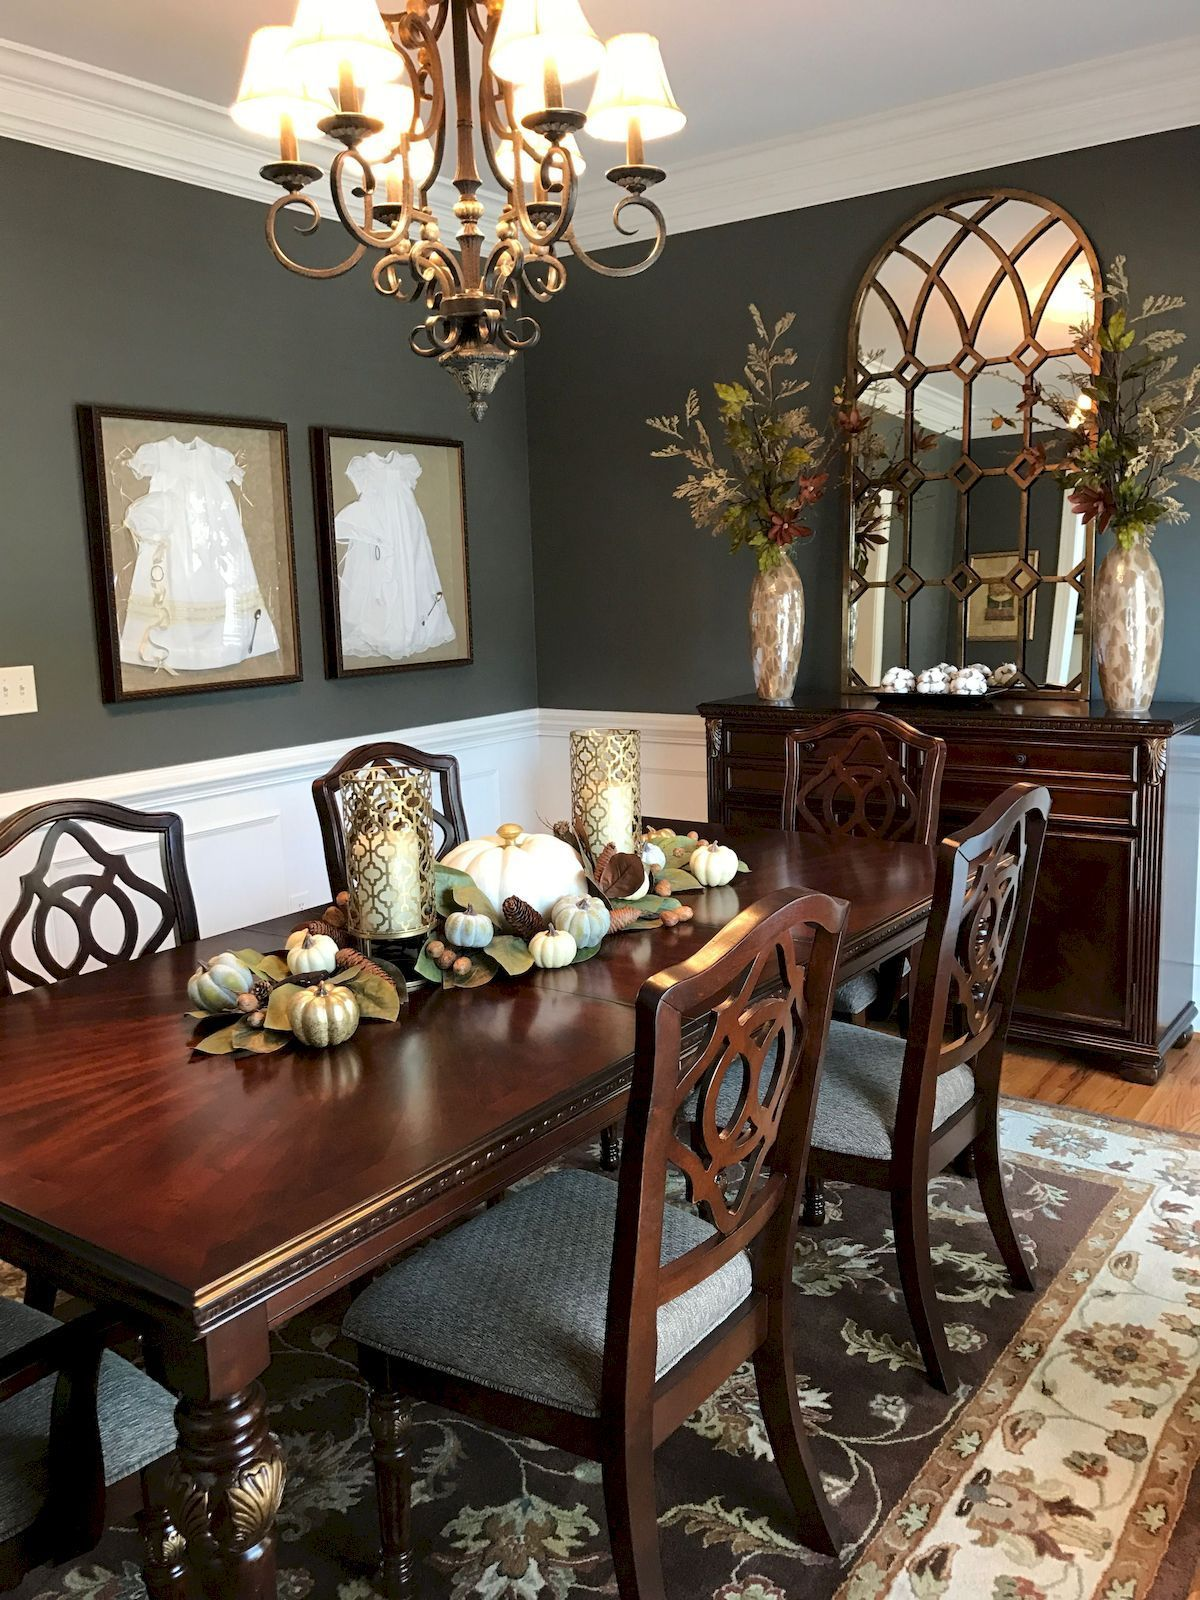 Traditional Farmhouse Or Vintage No Matter The Dining Room Style Insplosion Com Has Elegant Dining Room Dining Room Table Decor Dining Room Decor Traditional